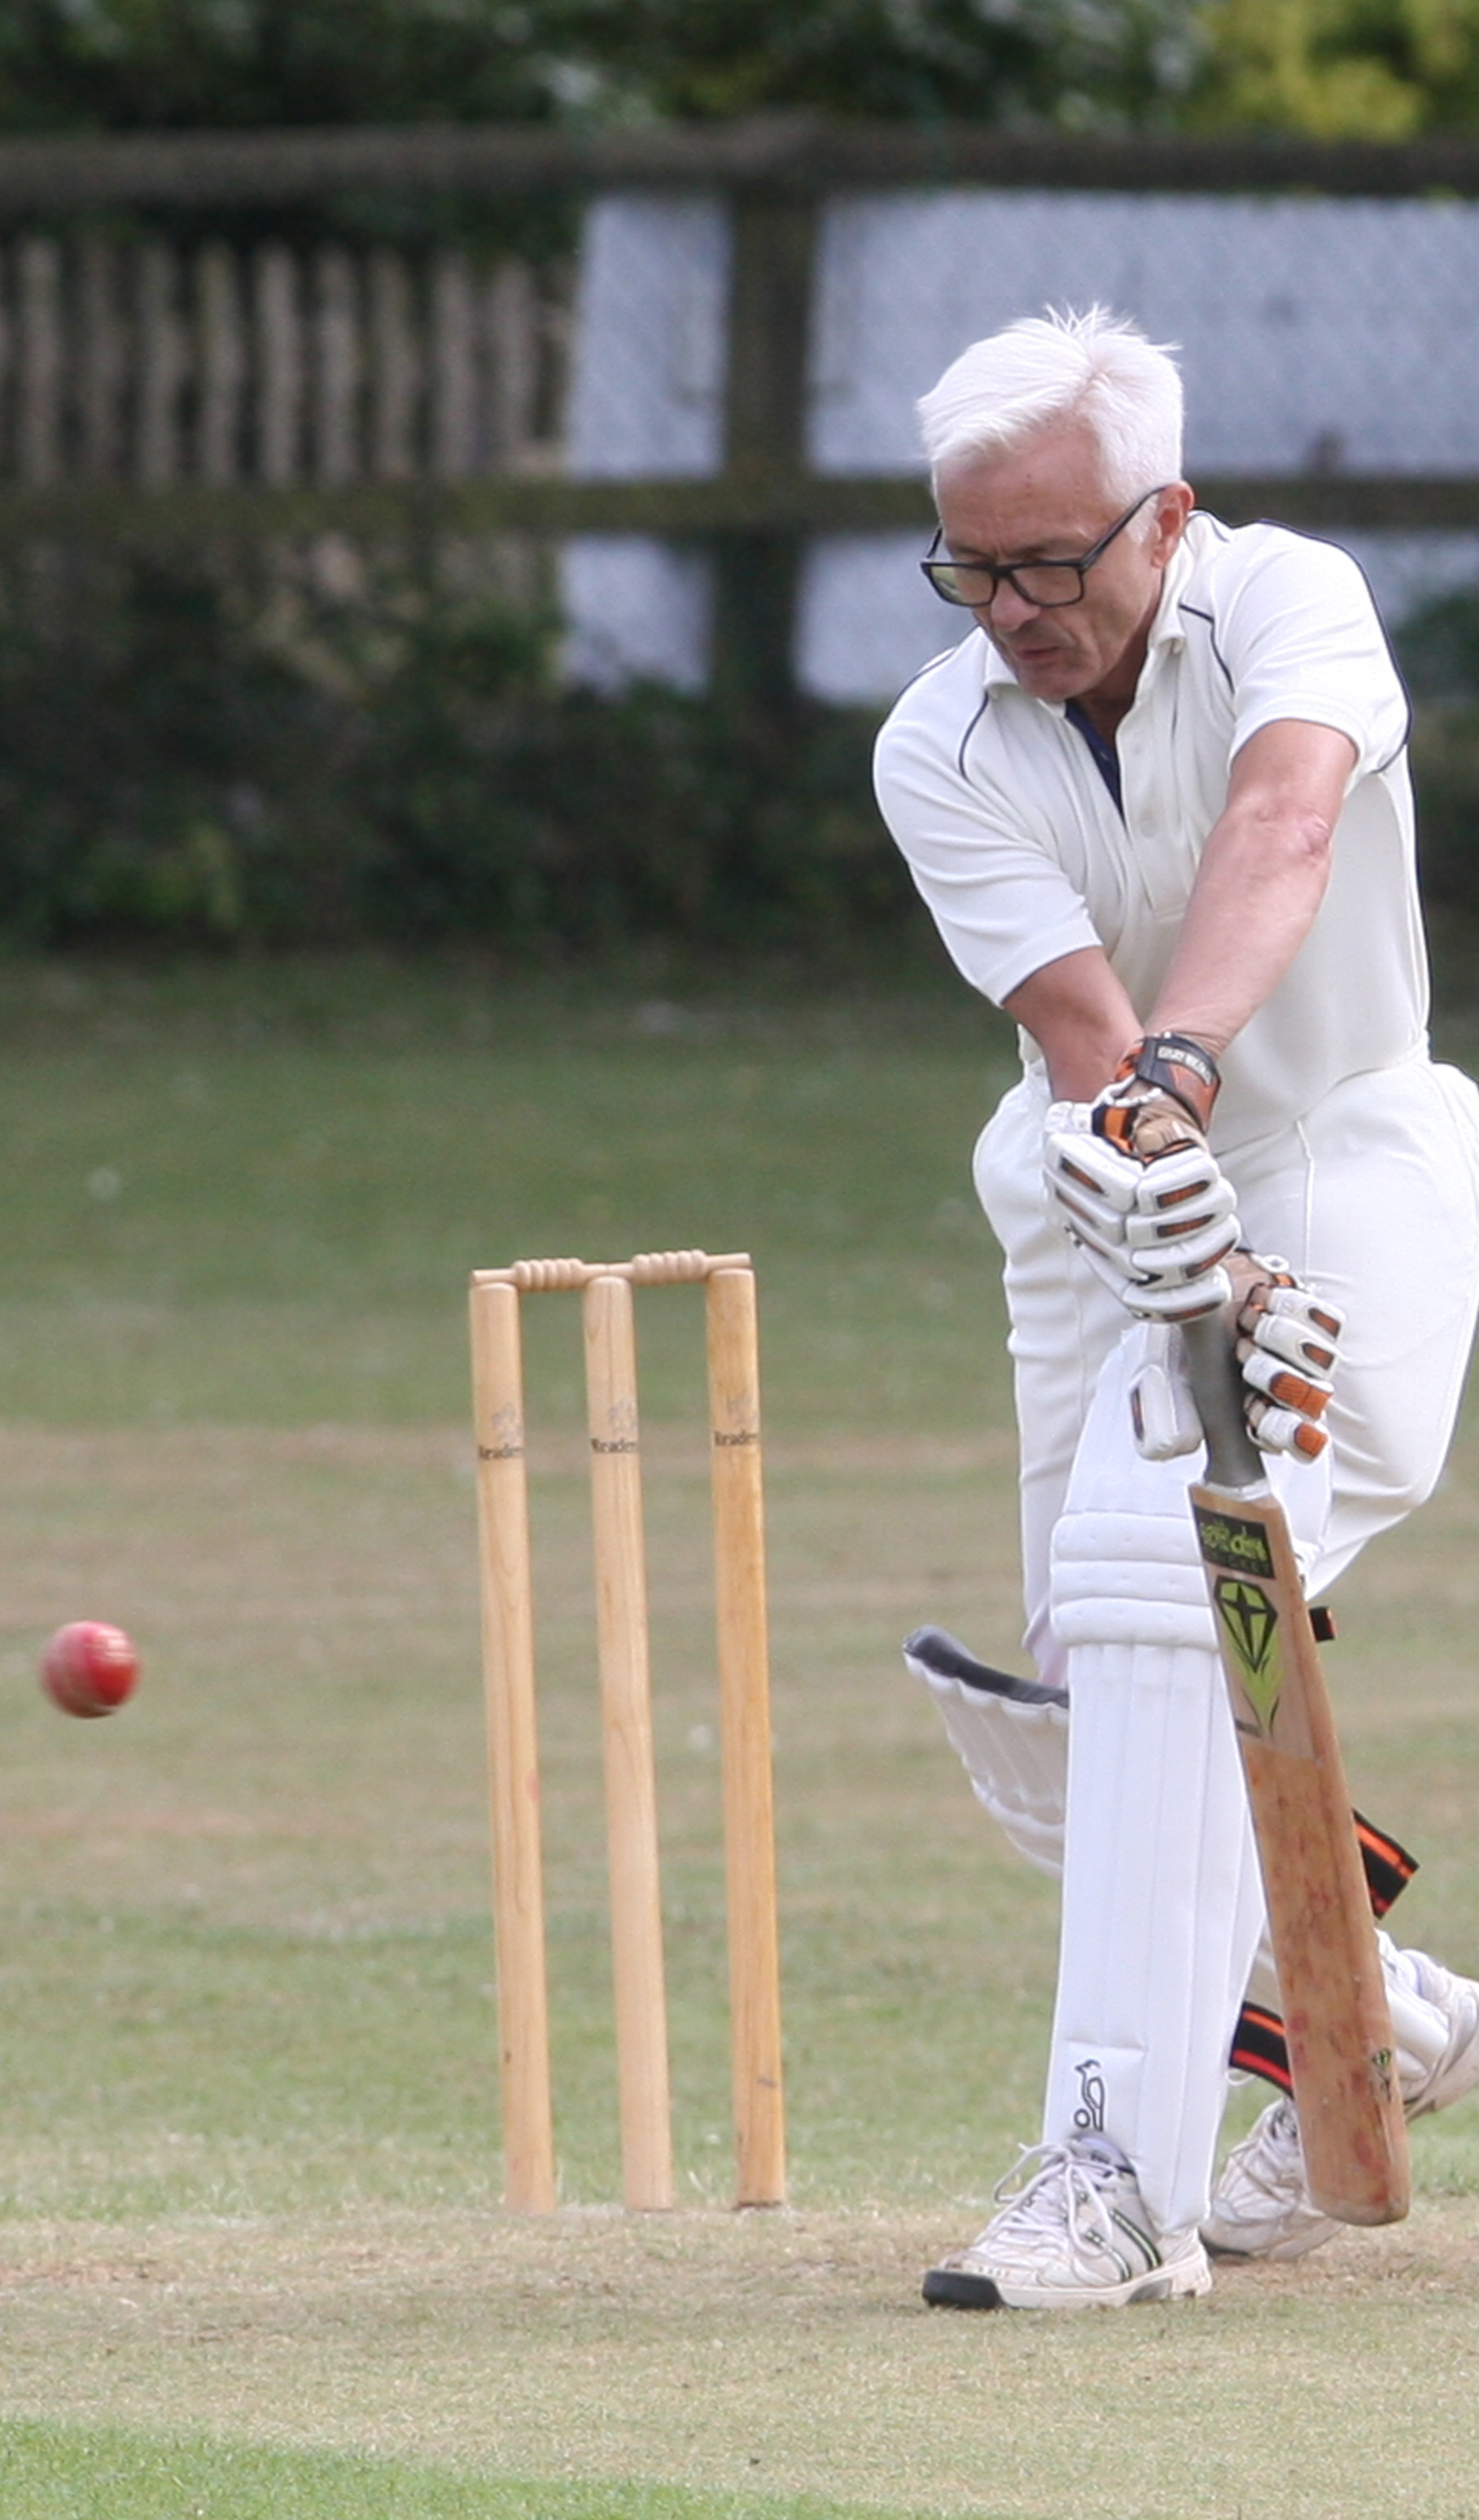 Sunningwell 's Geoff Corps angles his bat to play the ball in their one-wicket win against Uffington. Picture: Steve Wheeler